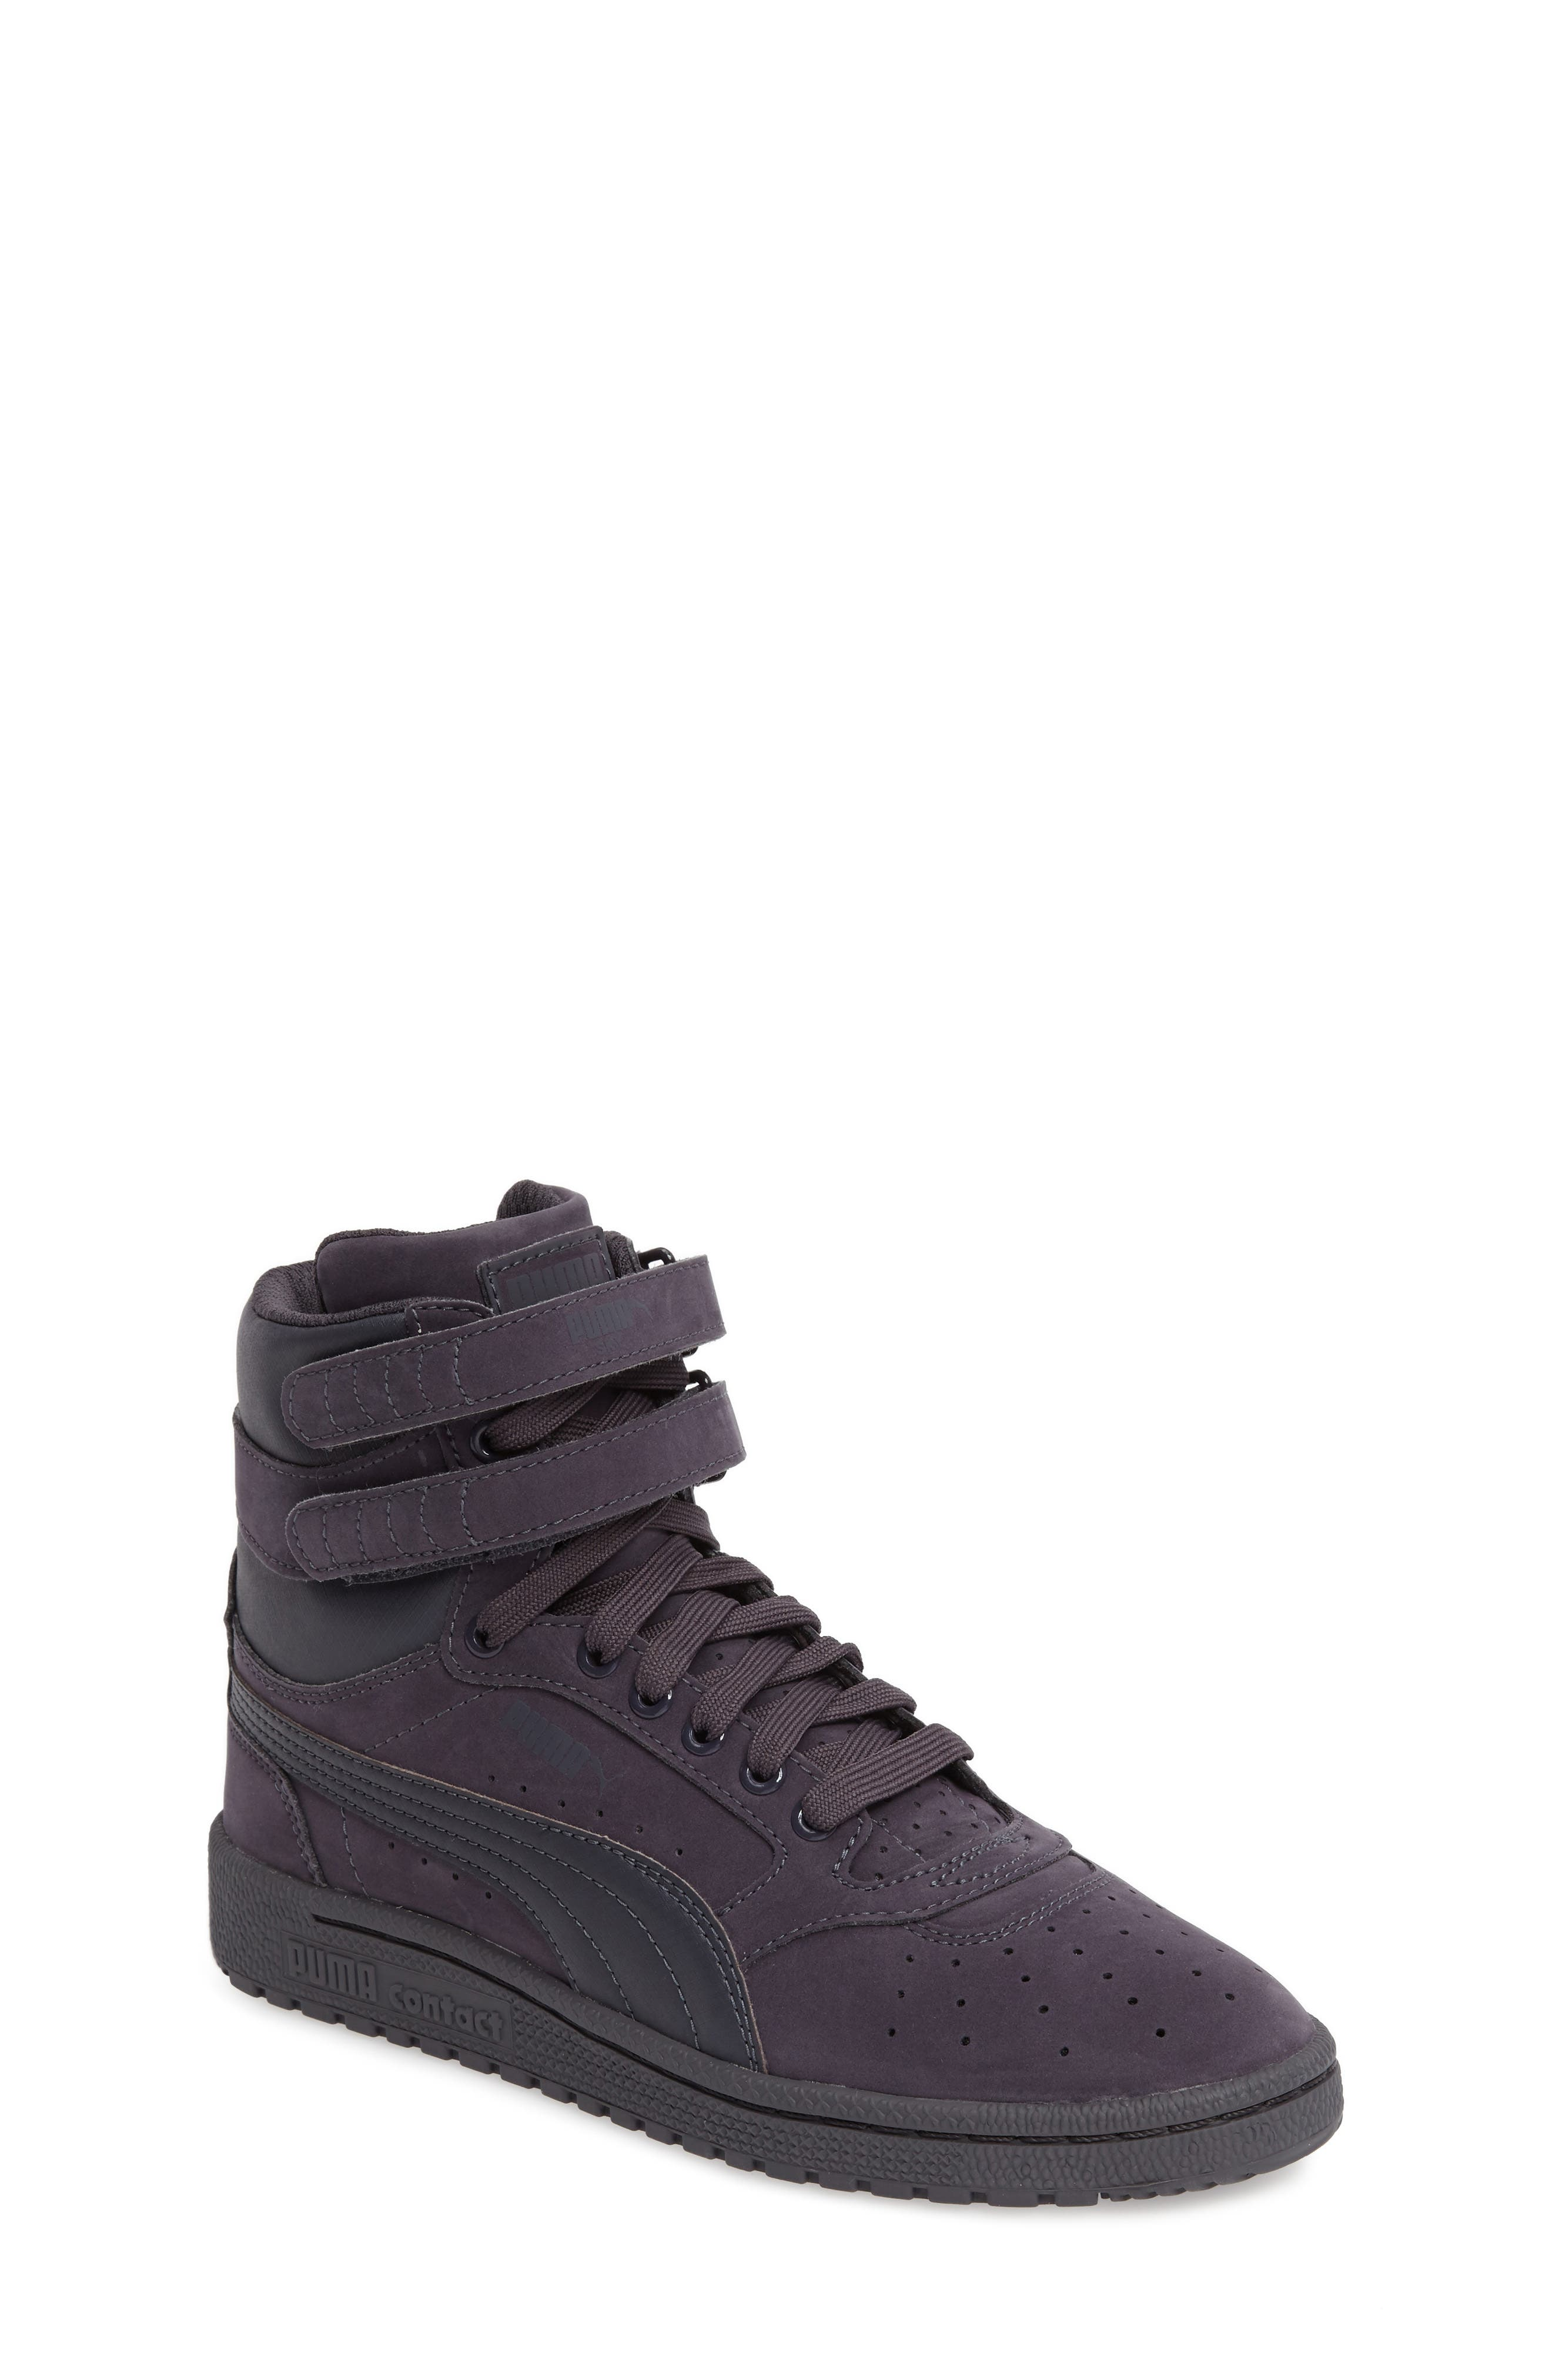 Ski II High Top Sneaker,                         Main,                         color, 020